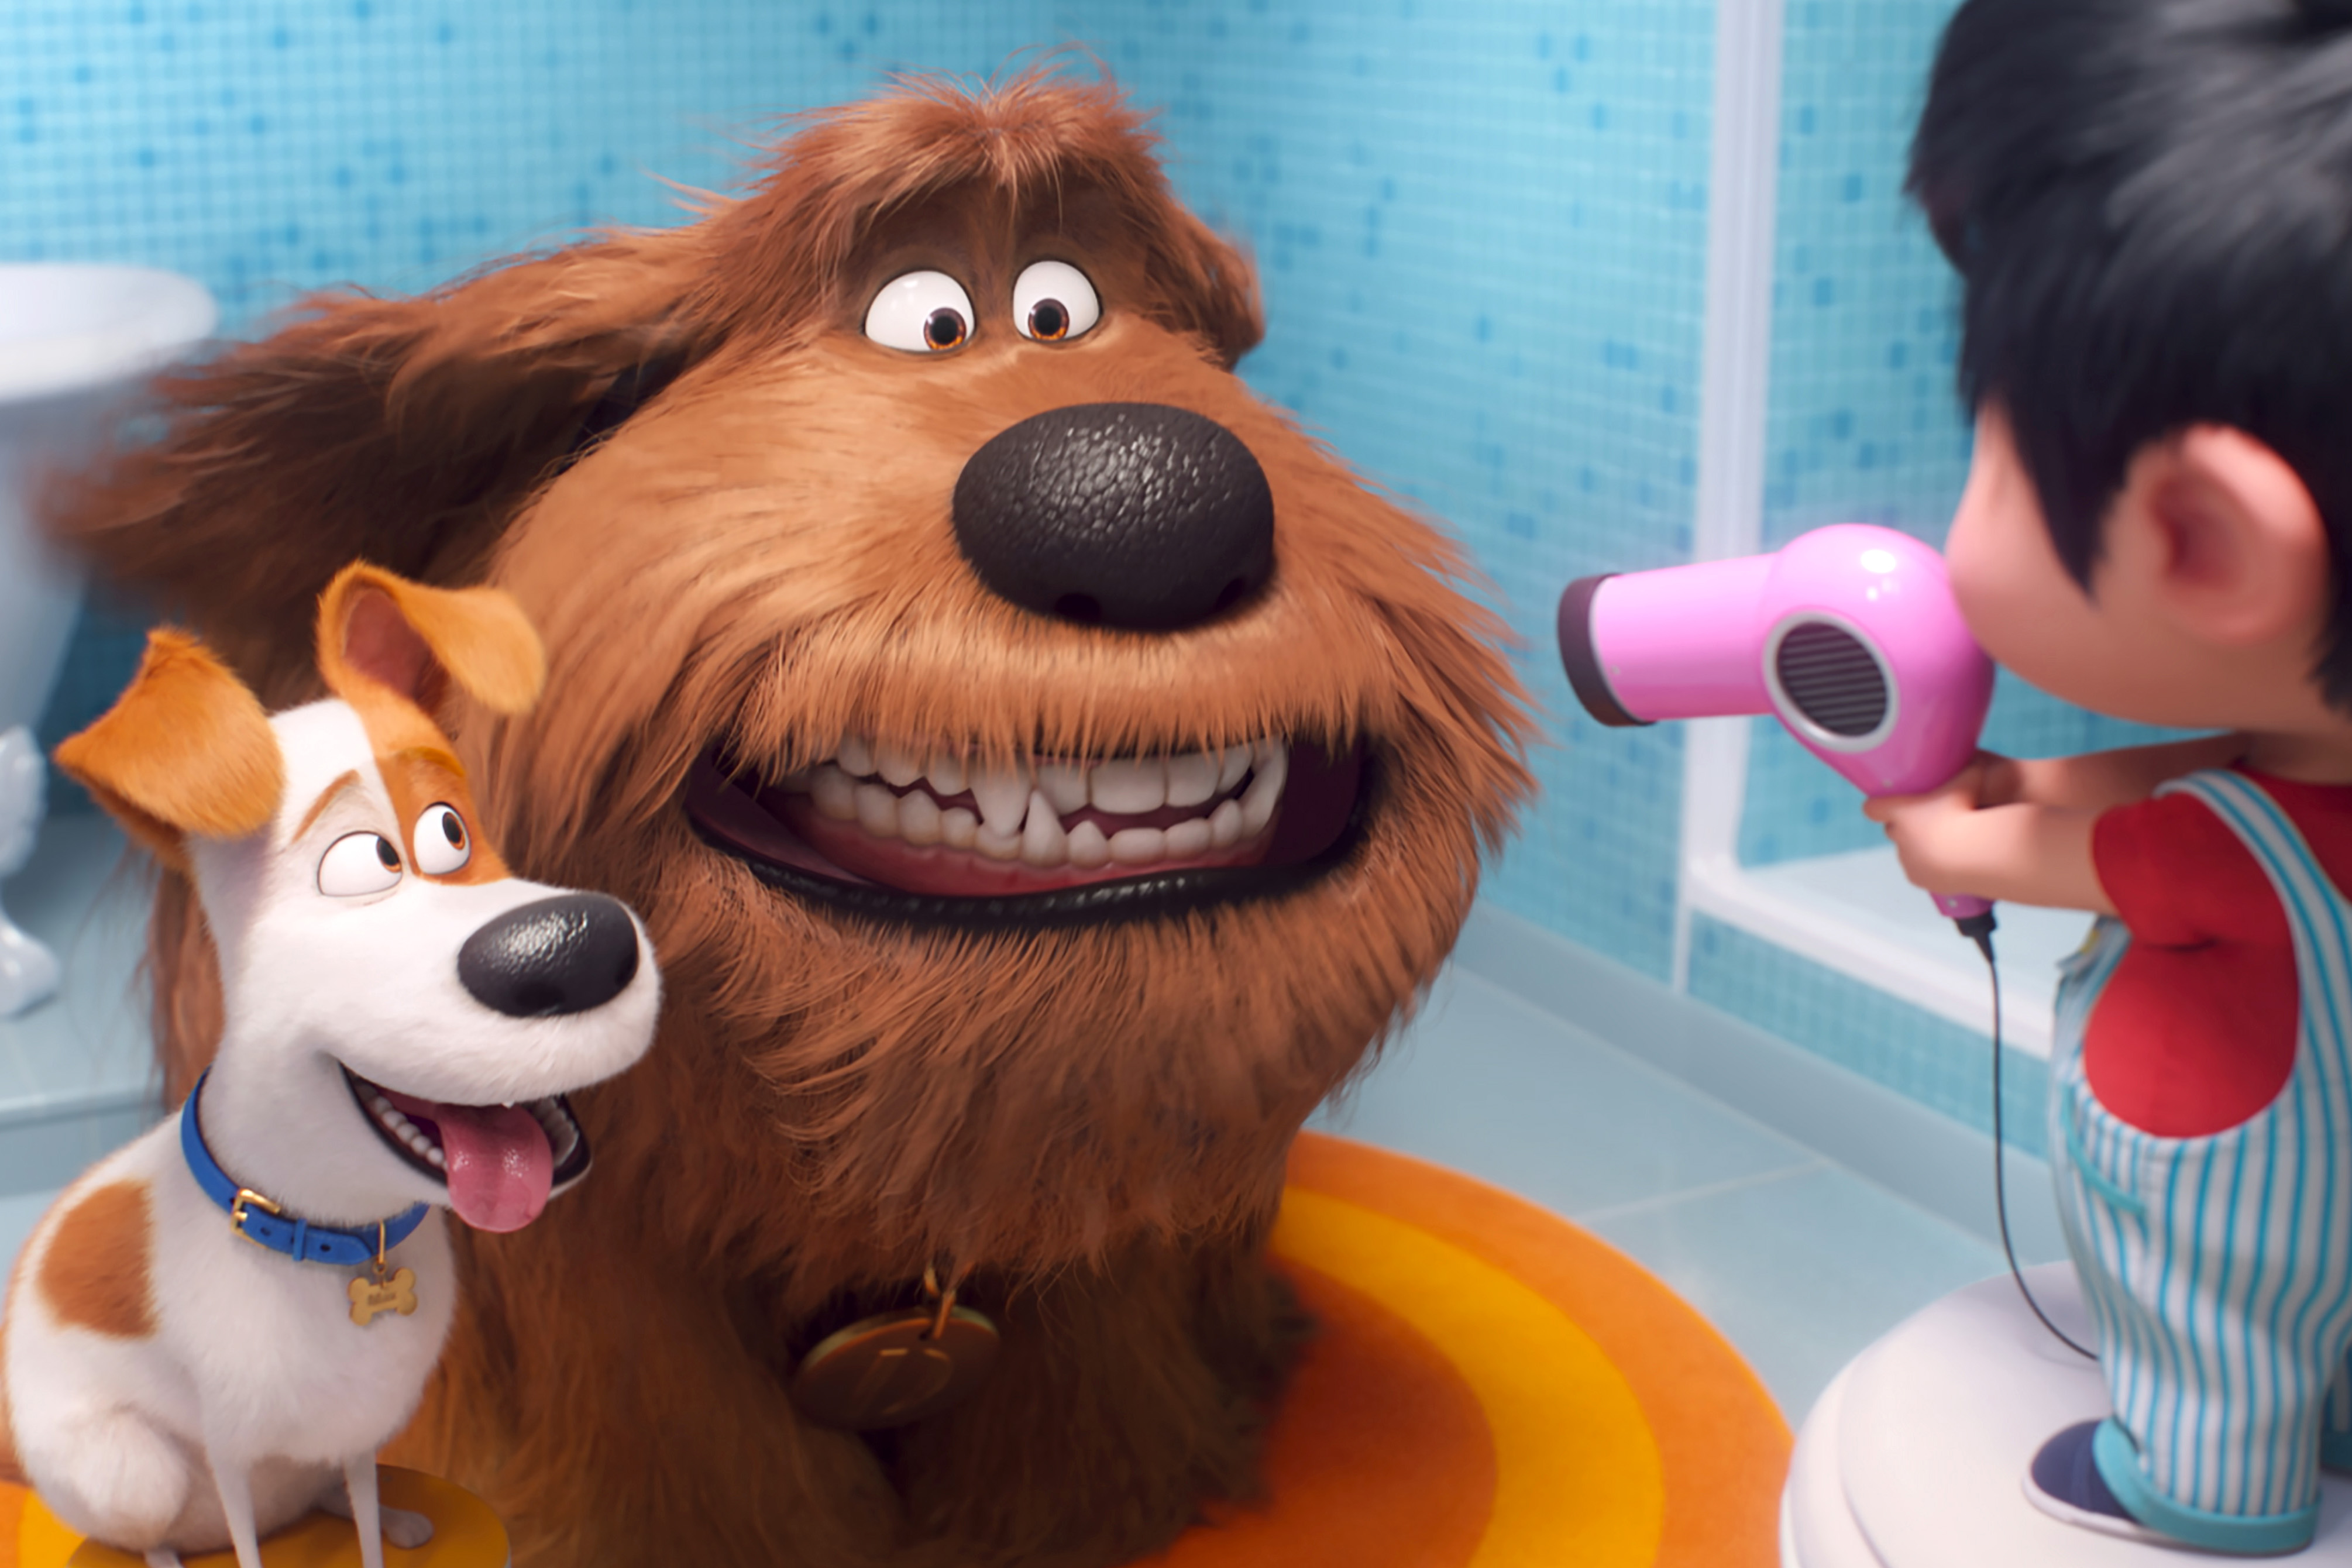 Max, voiced by Patton Oswalt, Duke, voiced by Eric Stonestreet, and Liam, voiced by Henry Lynch, appear in the animated movie